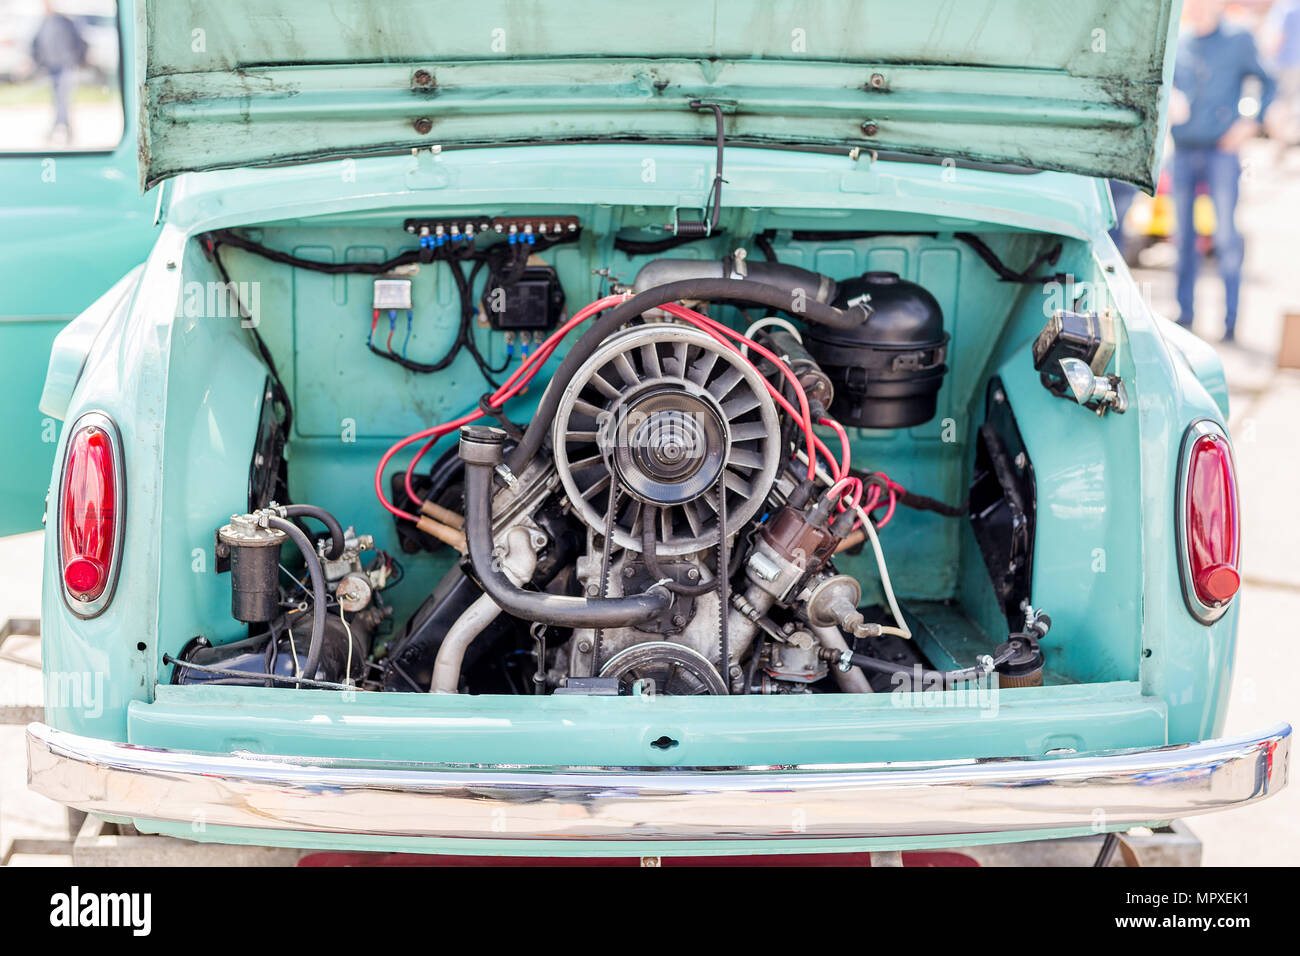 Back view of vintage retro car with open trunk. Rear-engined old vehicle. - Stock Image